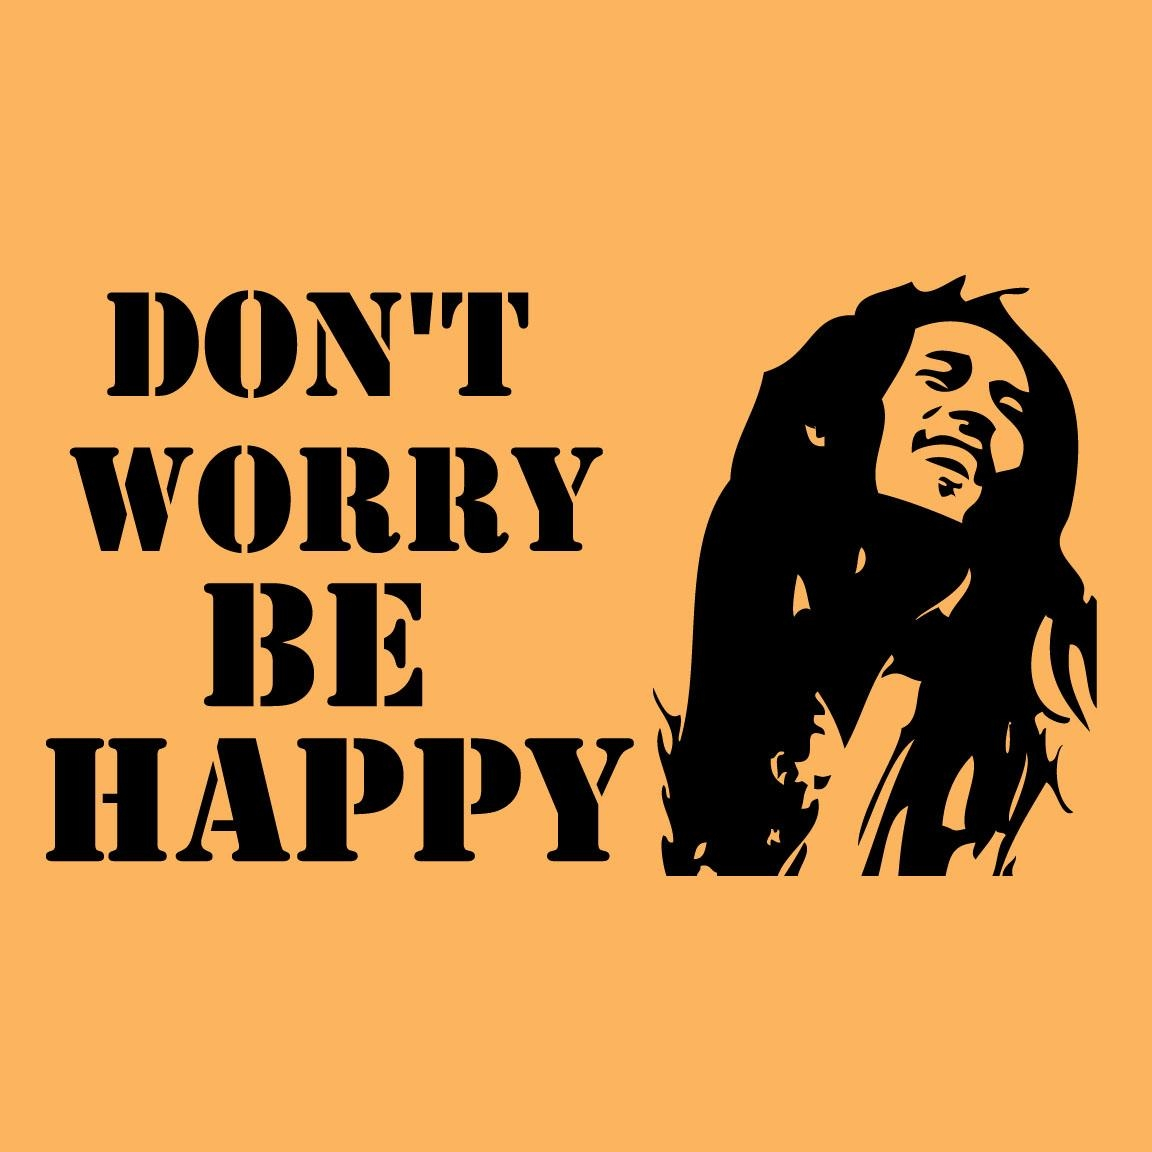 Marley Wall Decal Wall Vinyl Sticker Easy To Apply! Intended For Bob Marley Wall Art (View 18 of 20)